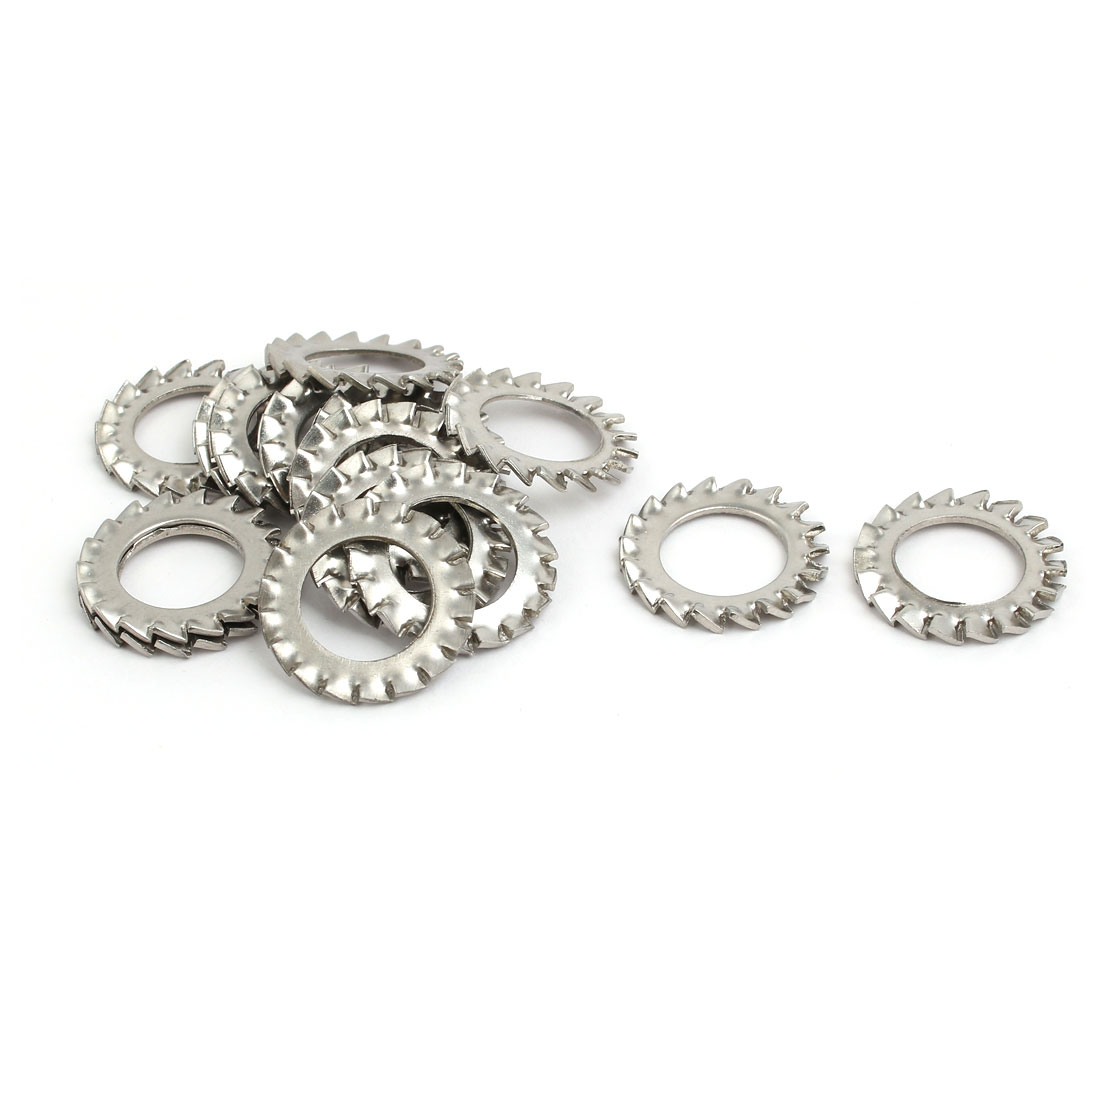 14mm Inner Dia 304 Stainless Steel External Tooth Lock Washer Silver Tone 15pcs